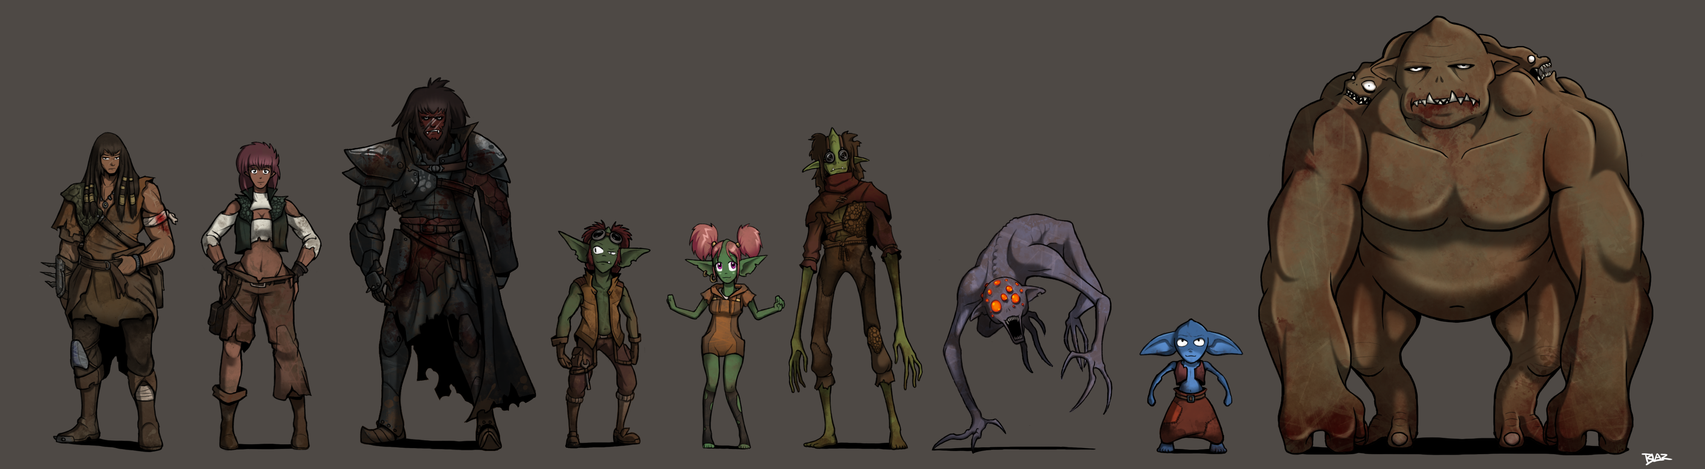 Urth: The Orcoids by Blazbaros